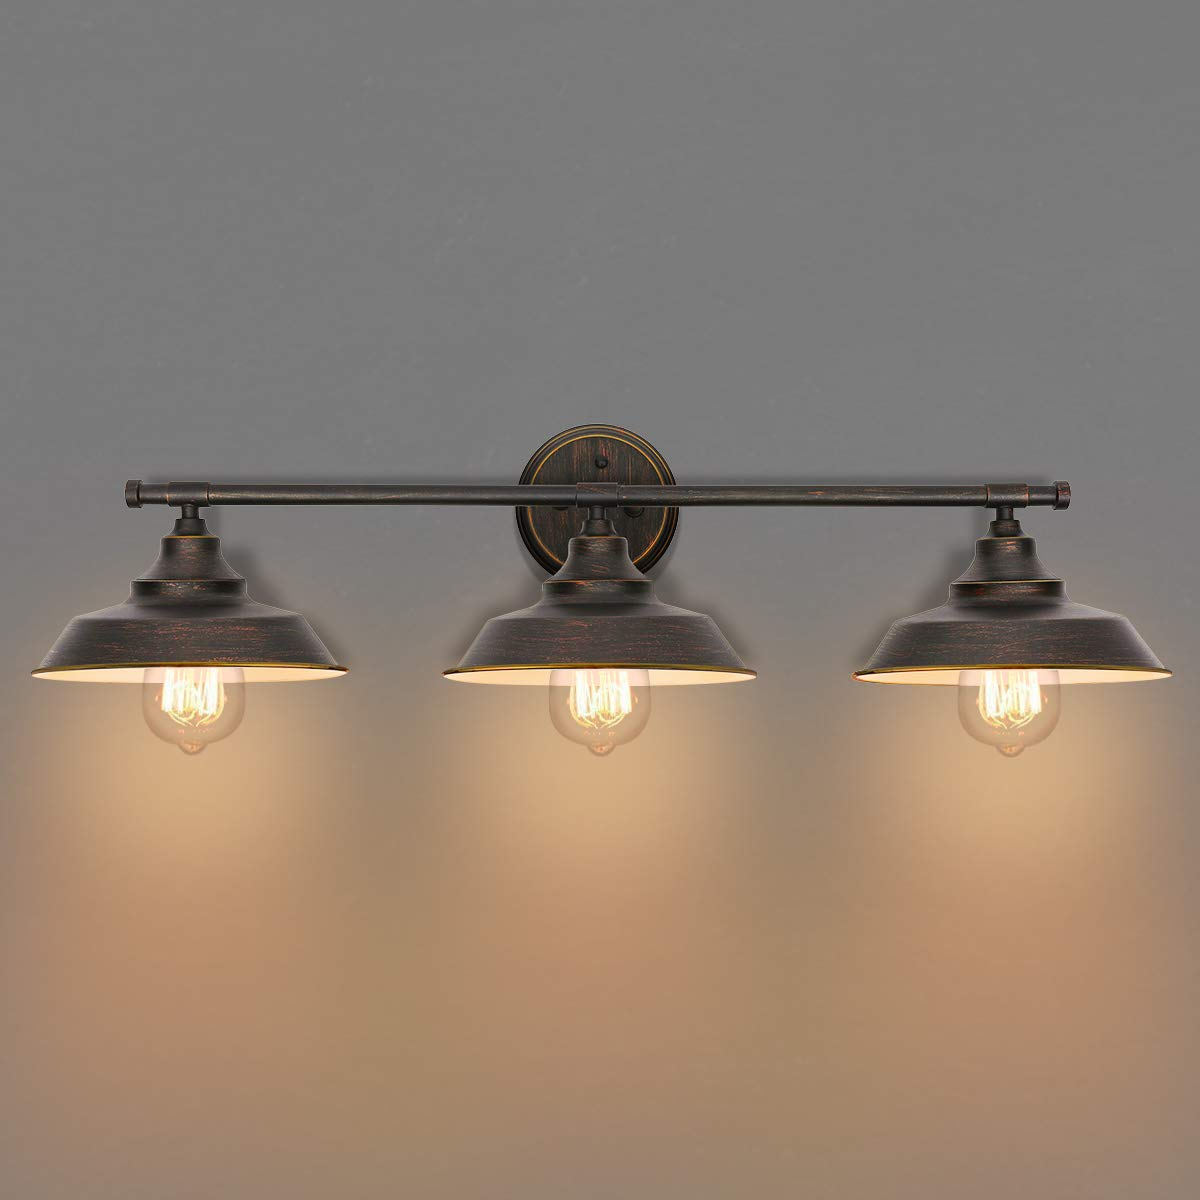 Traditional-Bathroom-Vanity-Wall-Lights-With-Bronze-Shades-And-Edison-Bulbs